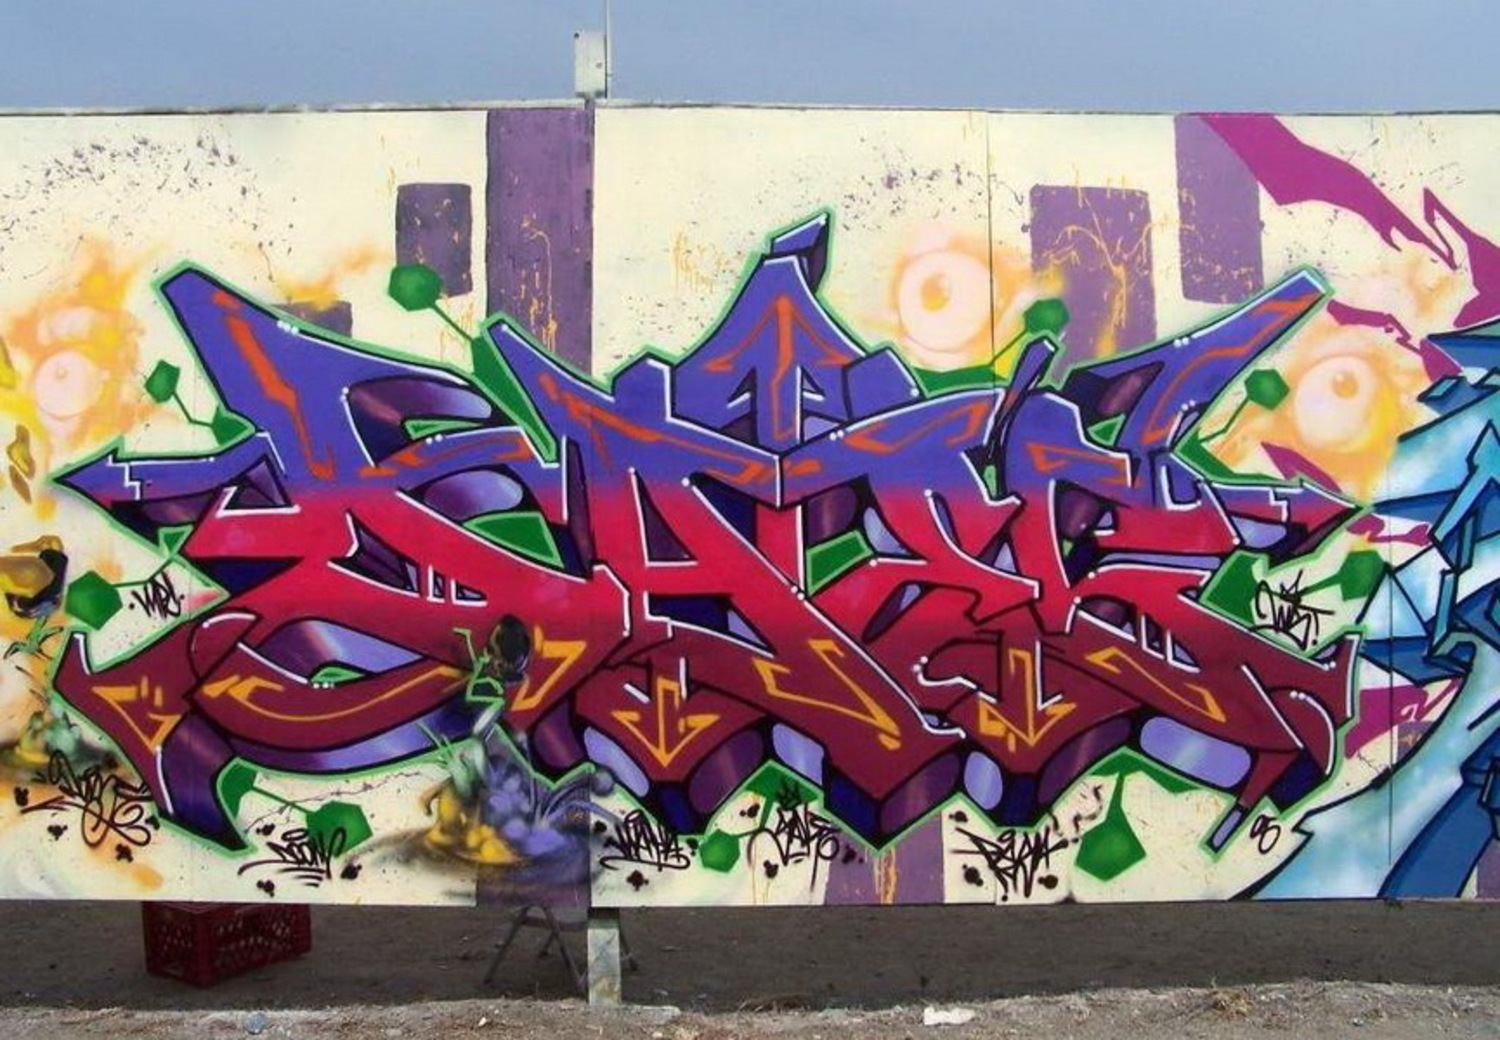 Daze - Important Member of the Renowned Group of NY Graffiti Artists